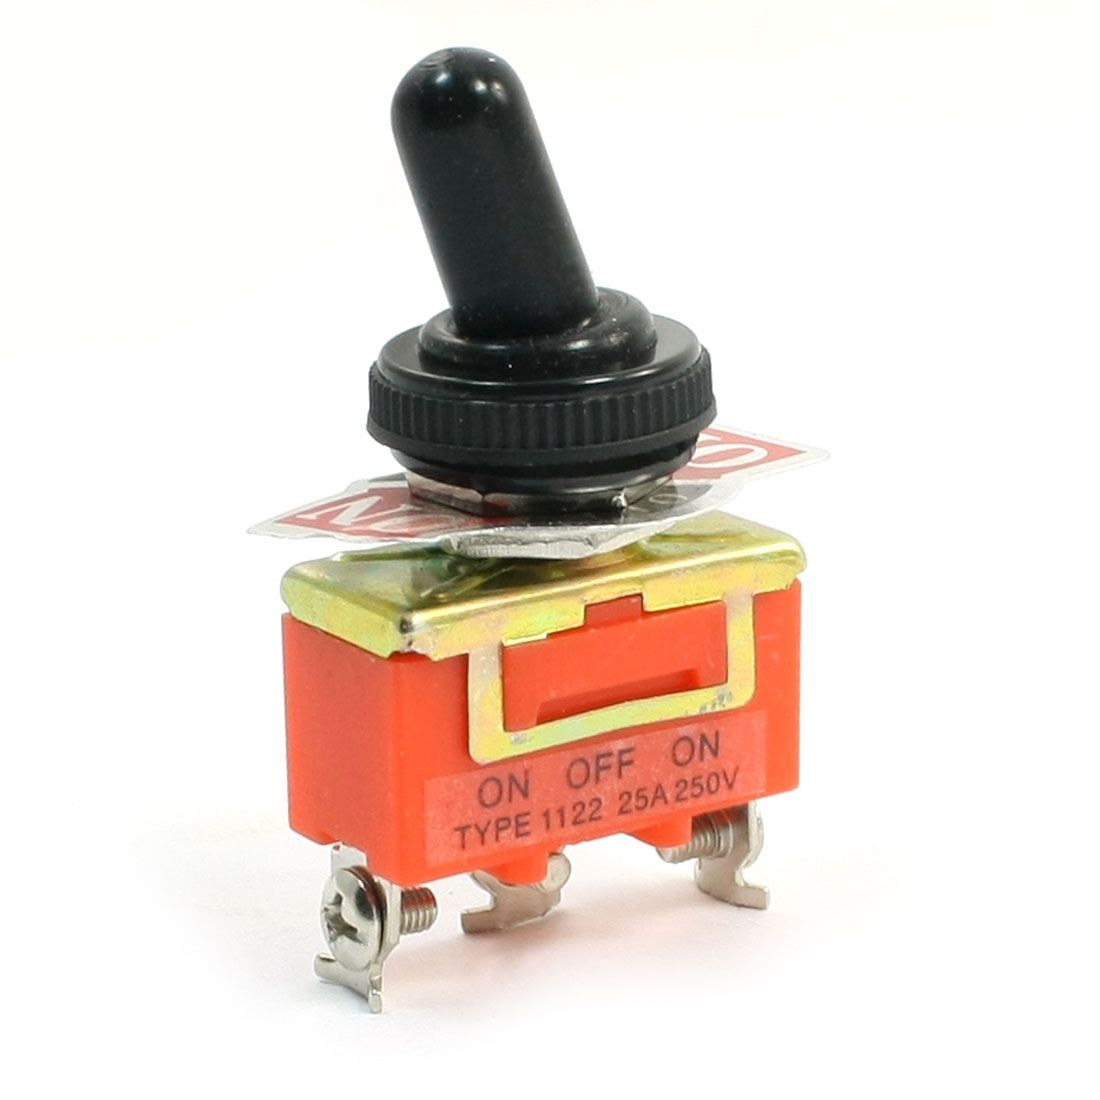 Uxcell 250v 25amp Spdt Latching Rocker Type 3 Position Toggle Switch Lighted Spst 25a 12v W Cover 2pin 3pin